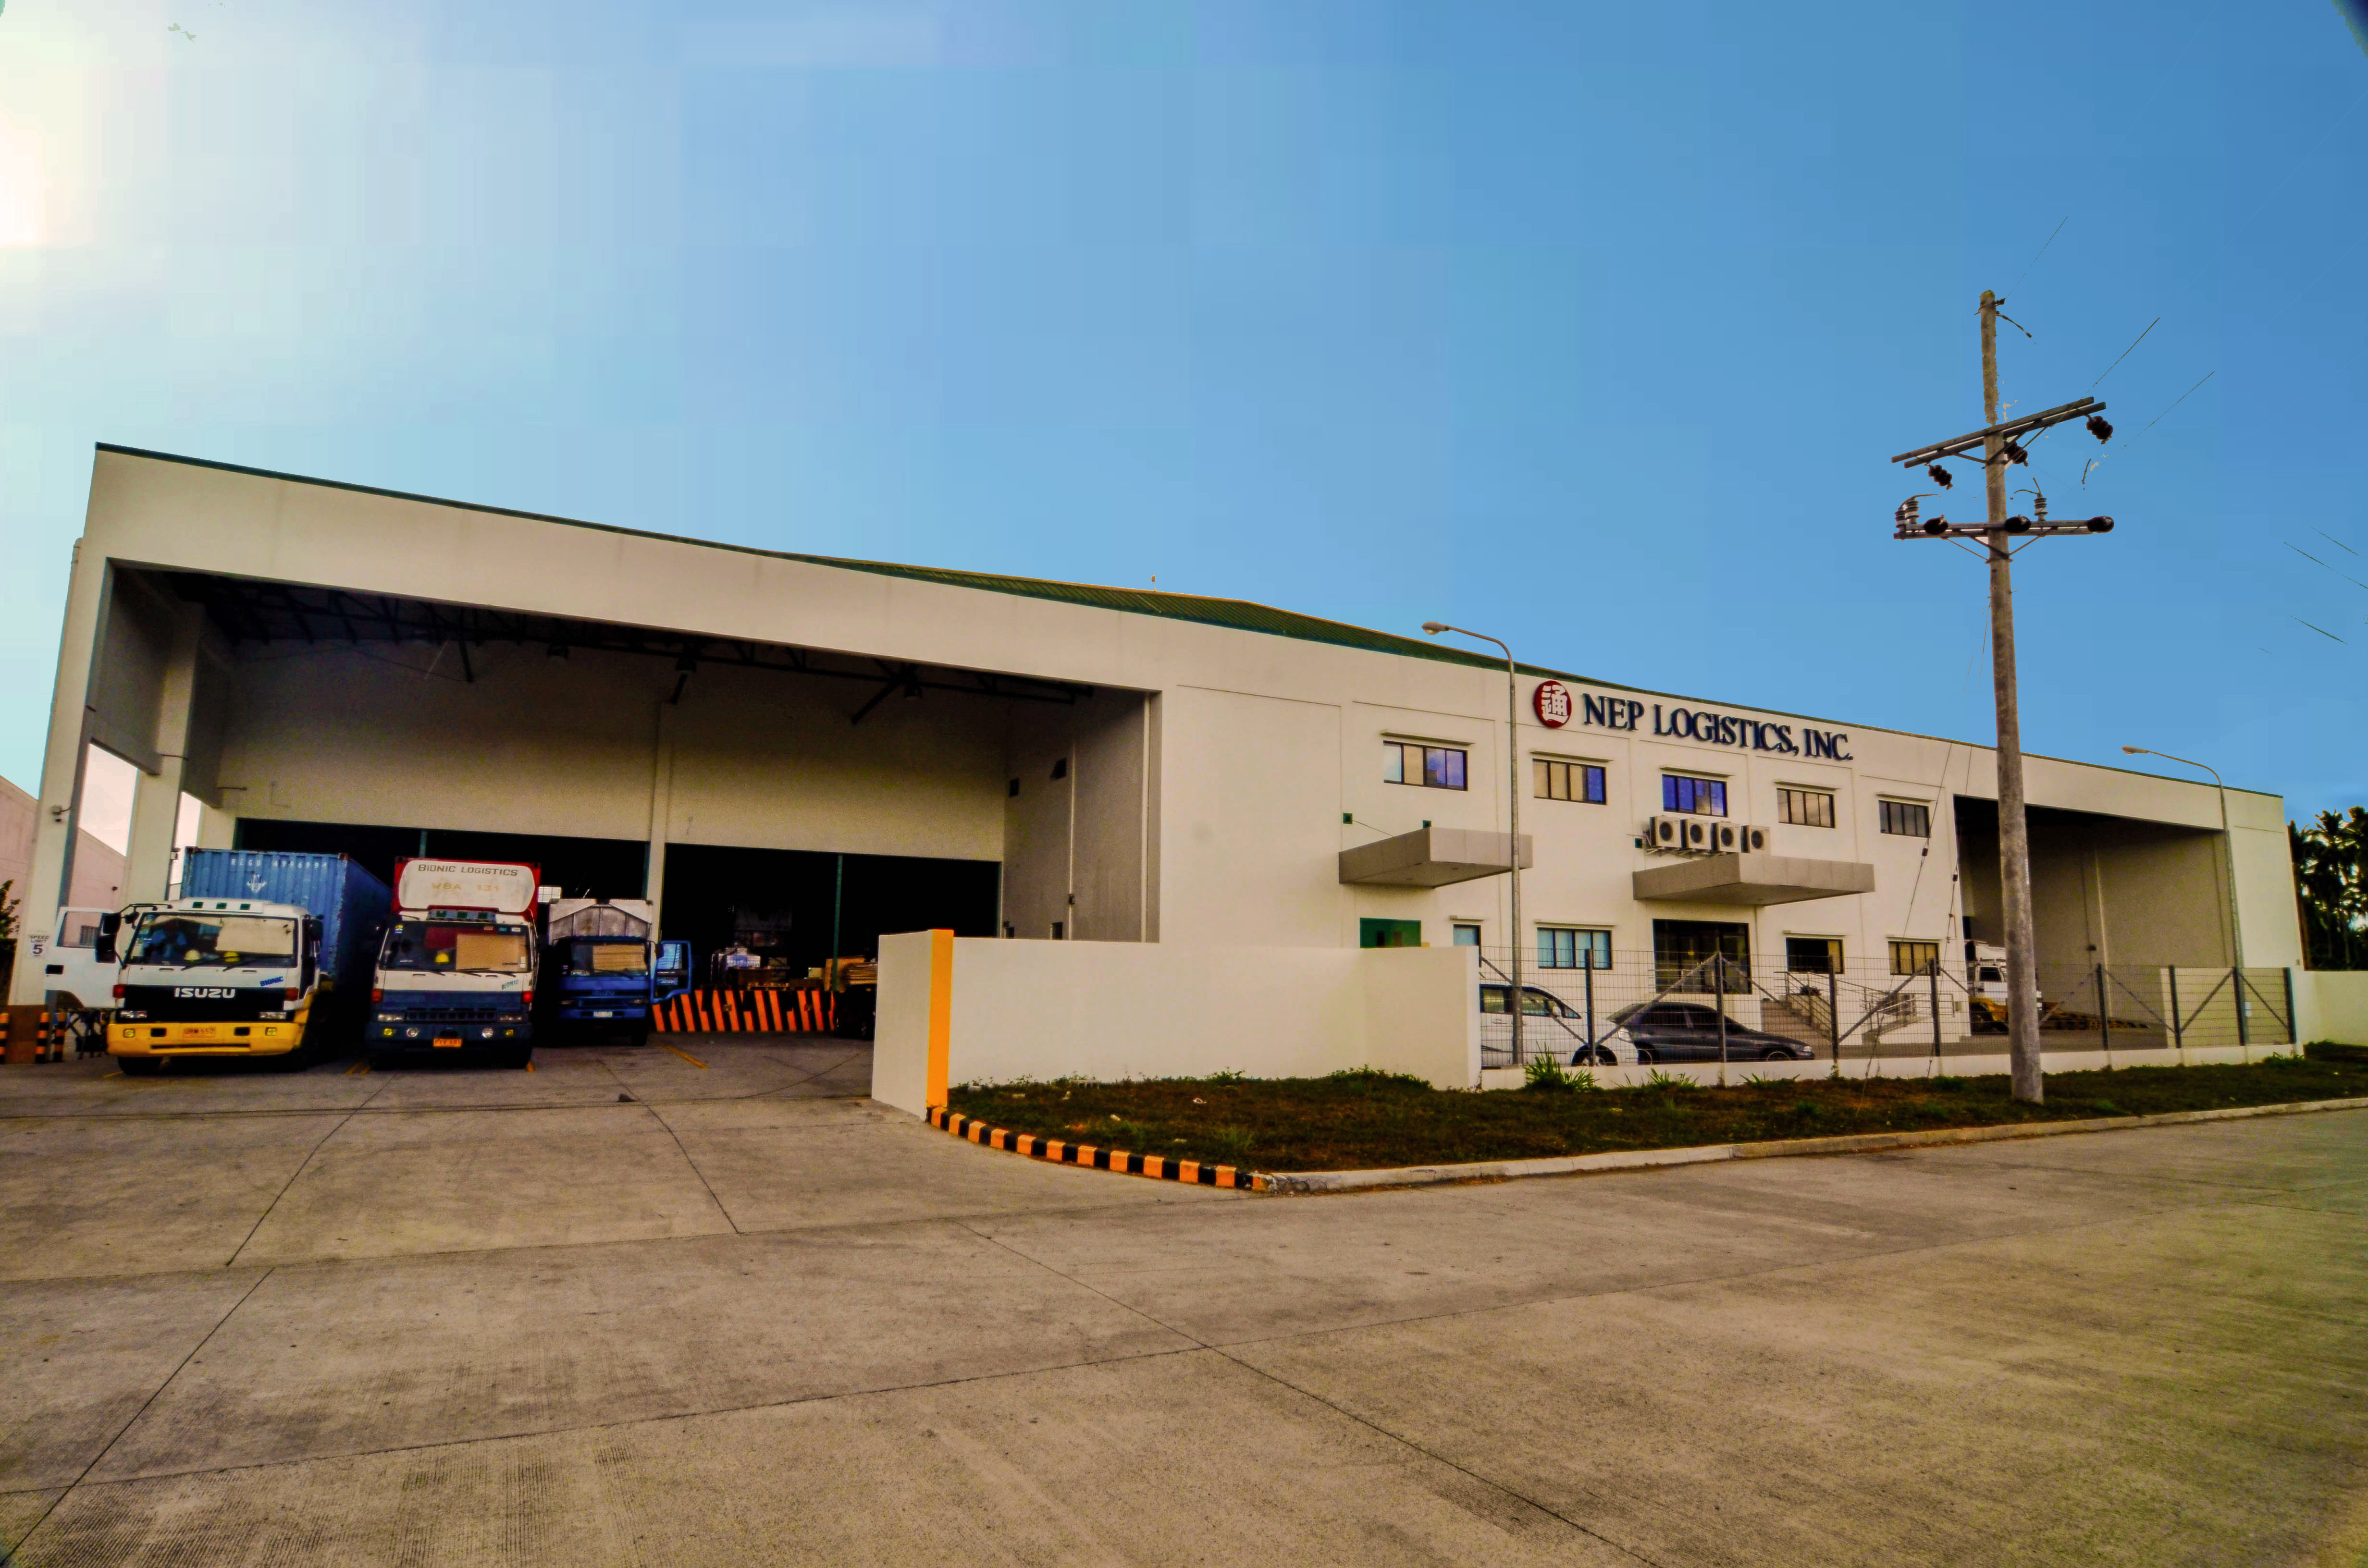 Toyota Of Greenfield >> Gallery | ILO Construction, Inc.